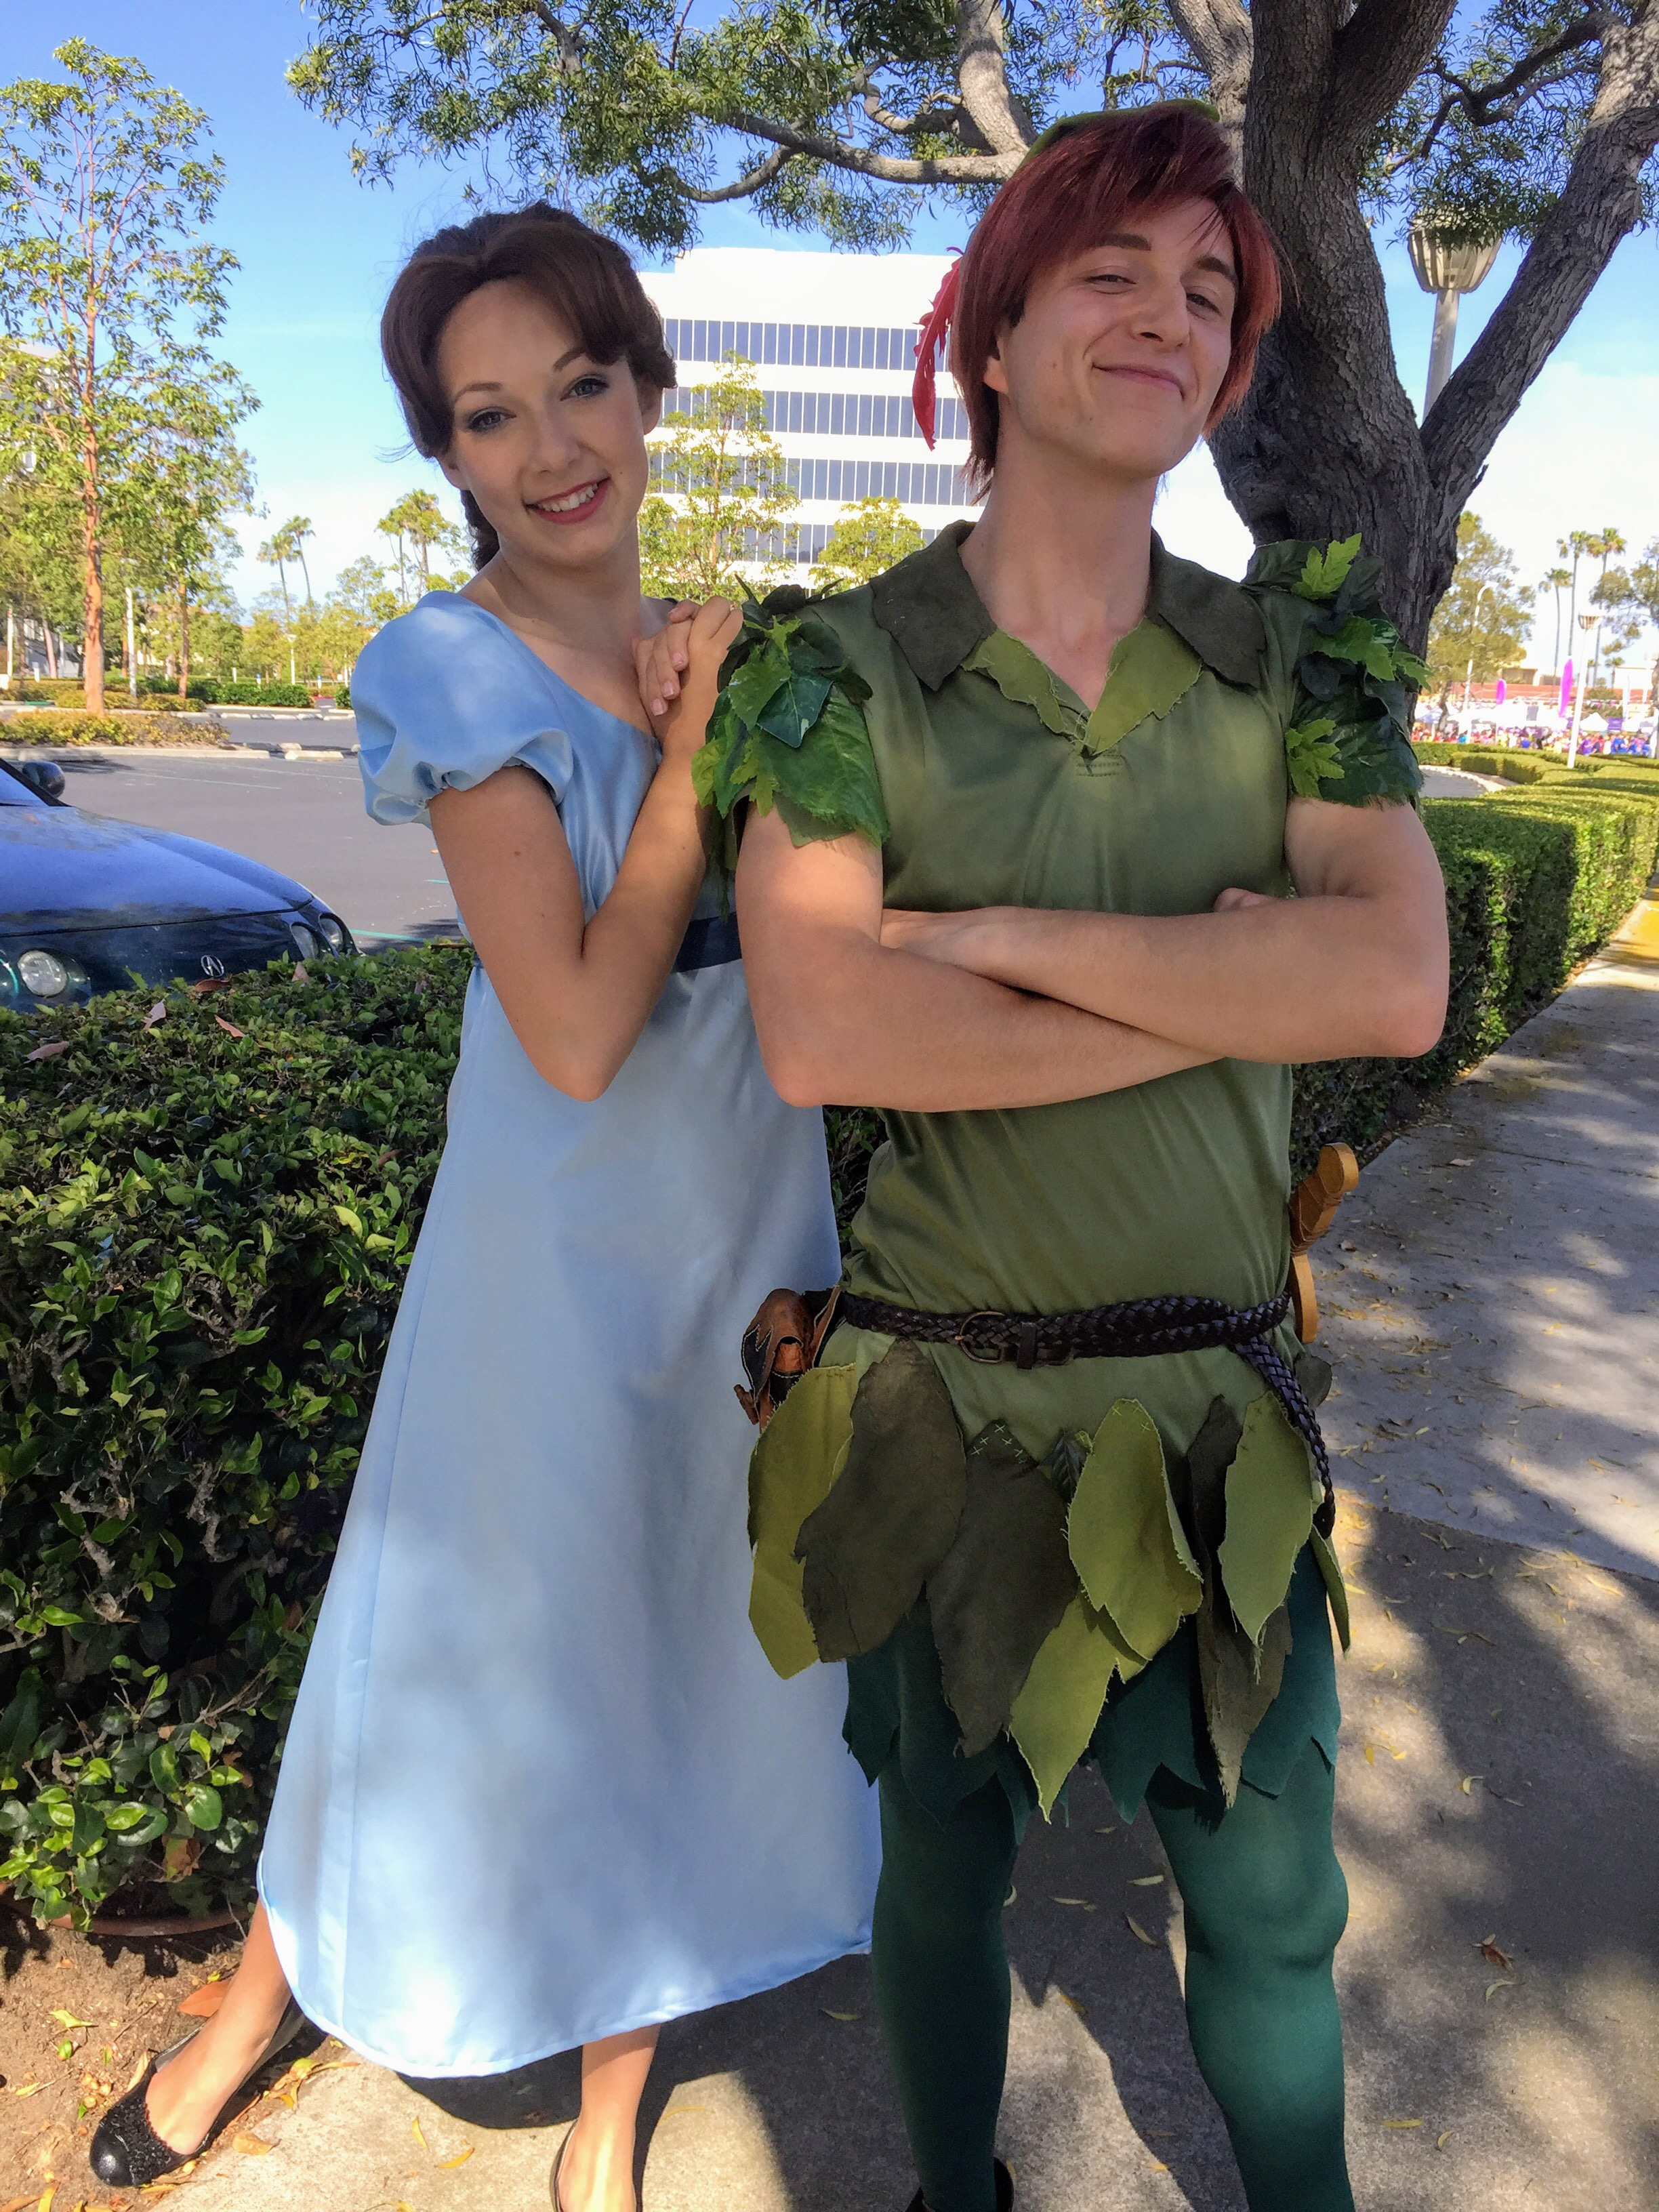 Peter Pan and Wendy Party Characters